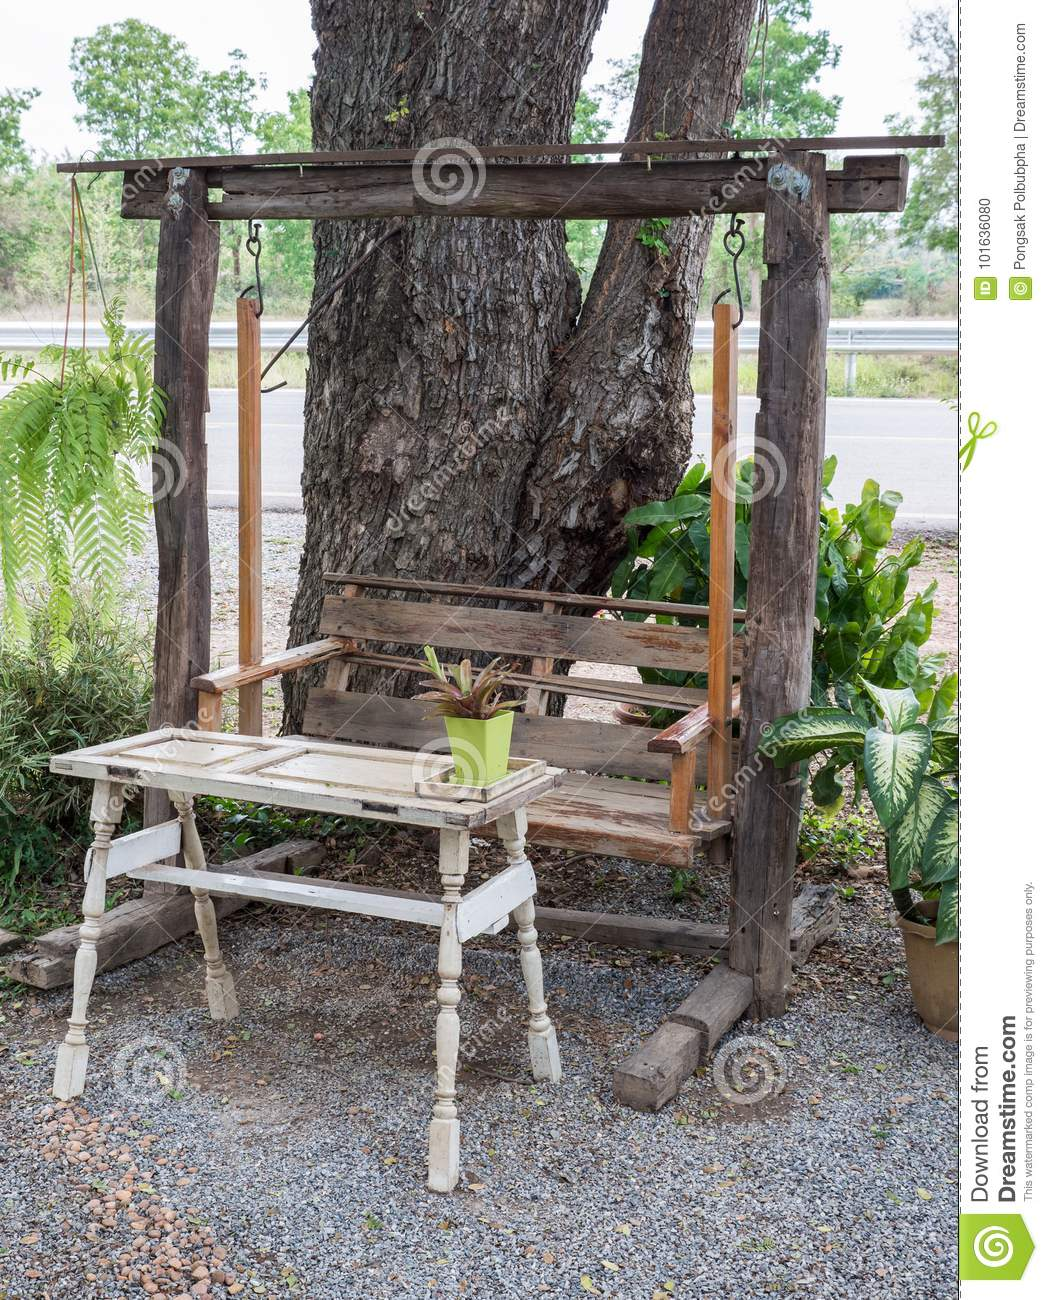 swing chair local seat old wooden with the white tabel stock photo image of bench